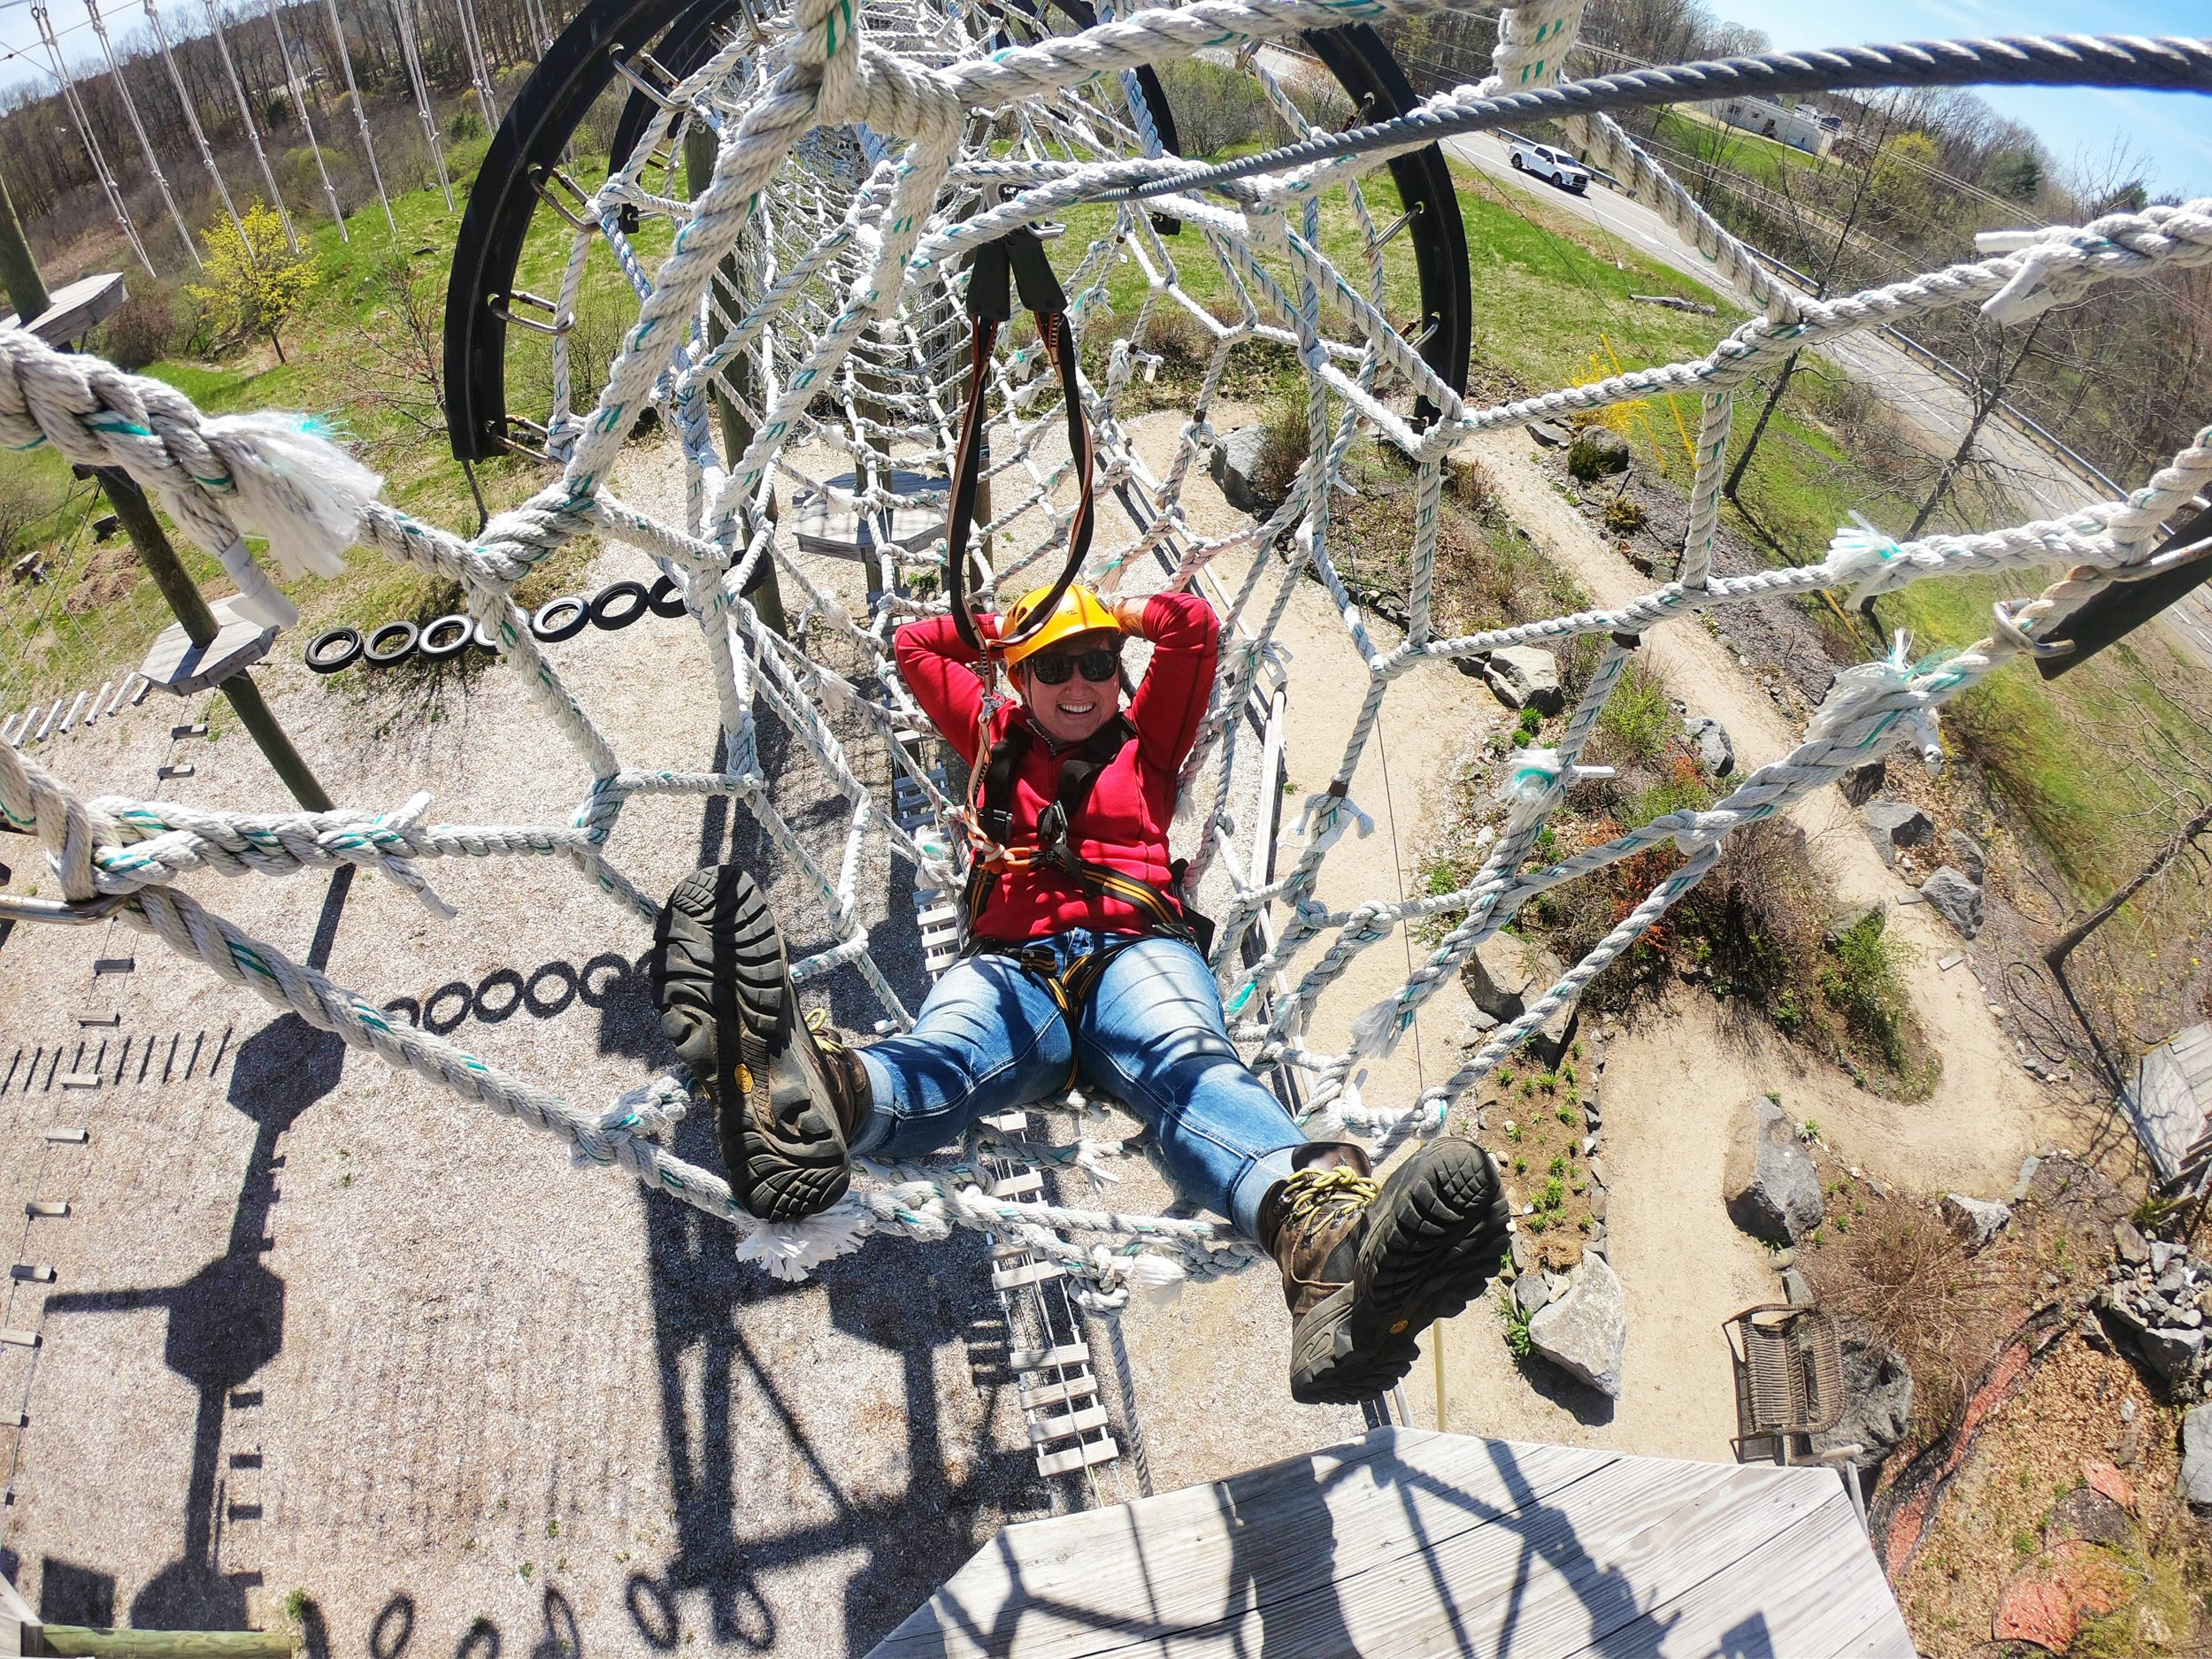 tourist attractions in southern maine - take flight adventure park